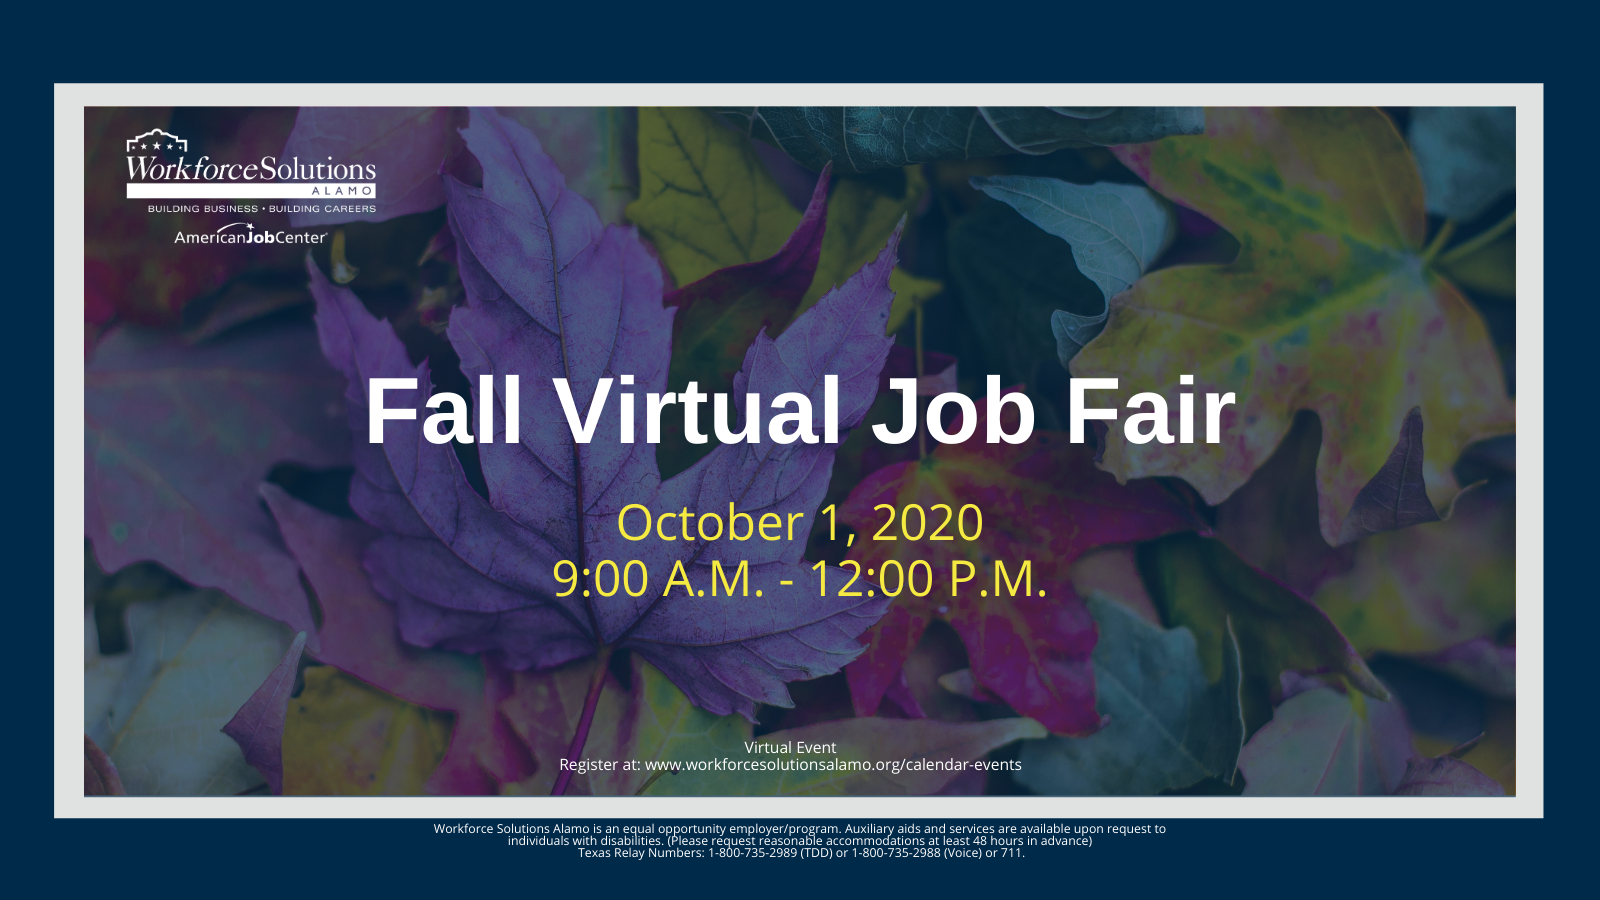 Flyer for Fall Job Fair from 10 a.m. to 12 p.m. October 1, 2020